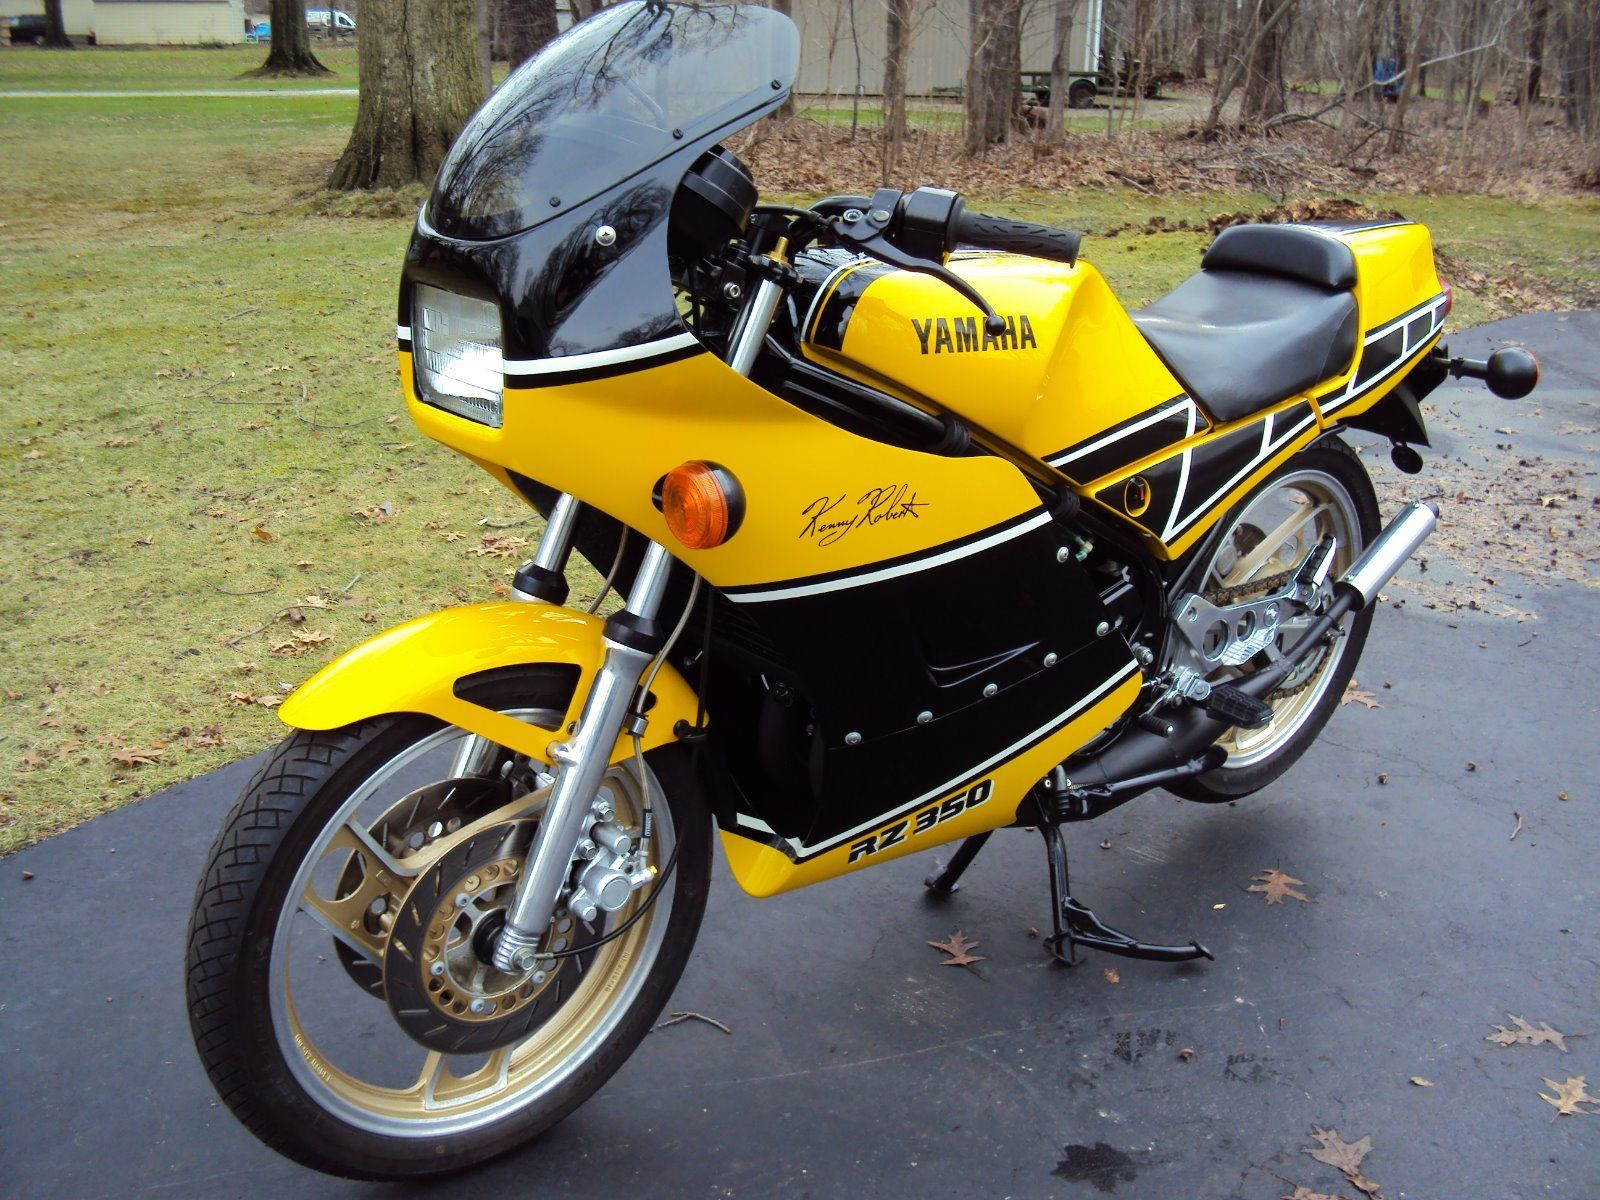 Restored replica 1984 yamaha rz350 for sale rare for Yamaha rz for sale